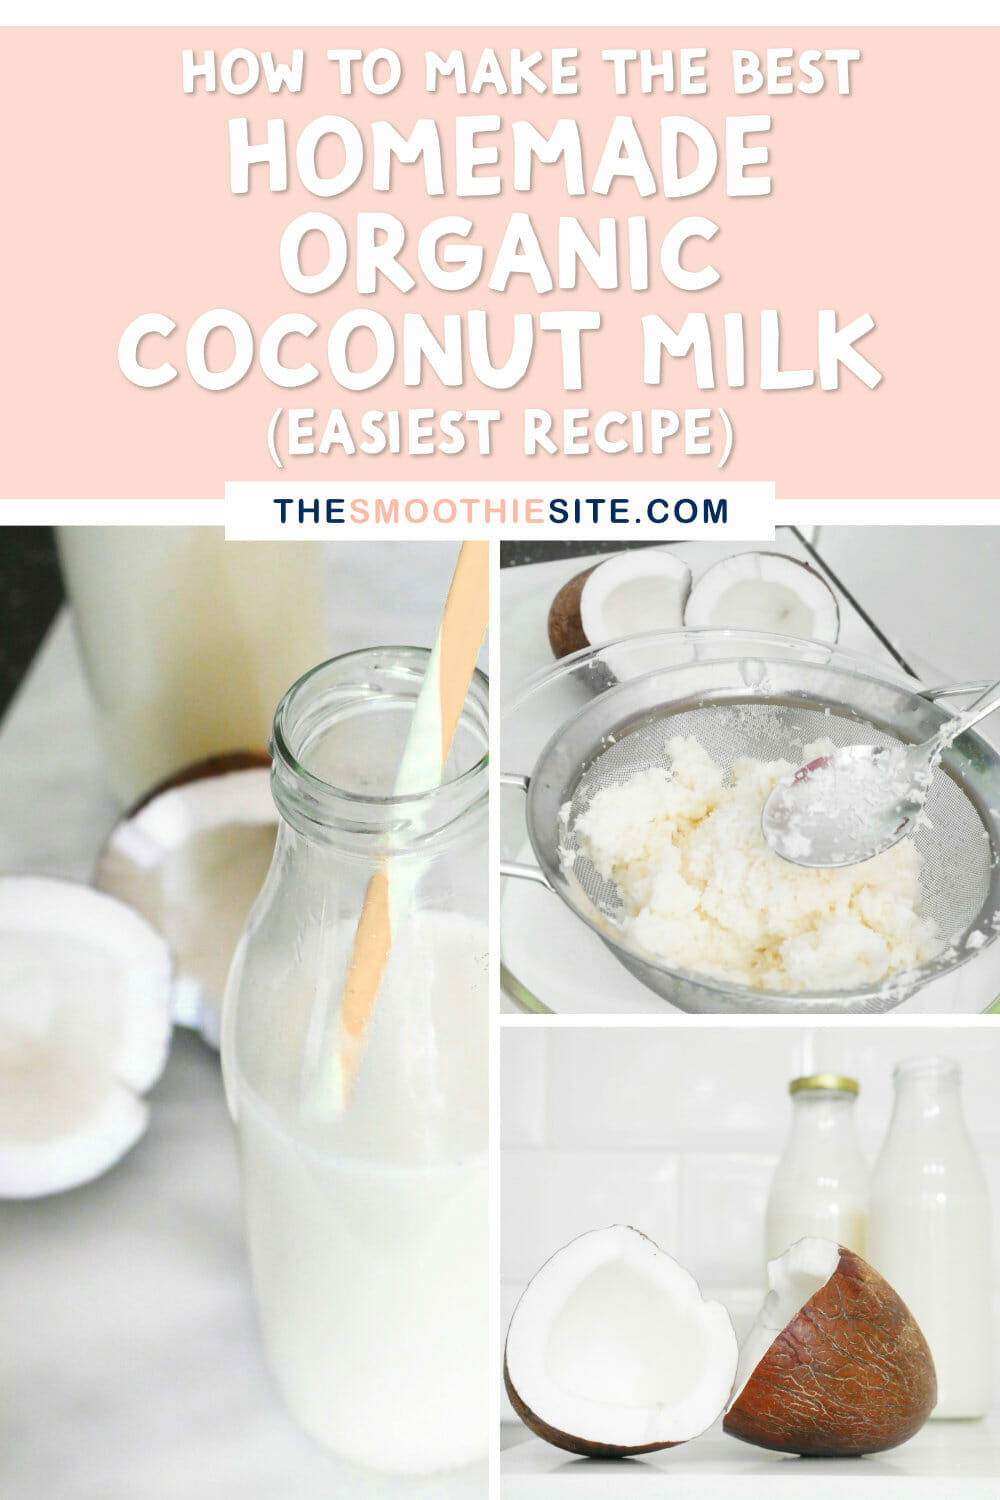 How to make the best homemade organic coconut milk (easiest recipe) via @thesmoothiesite